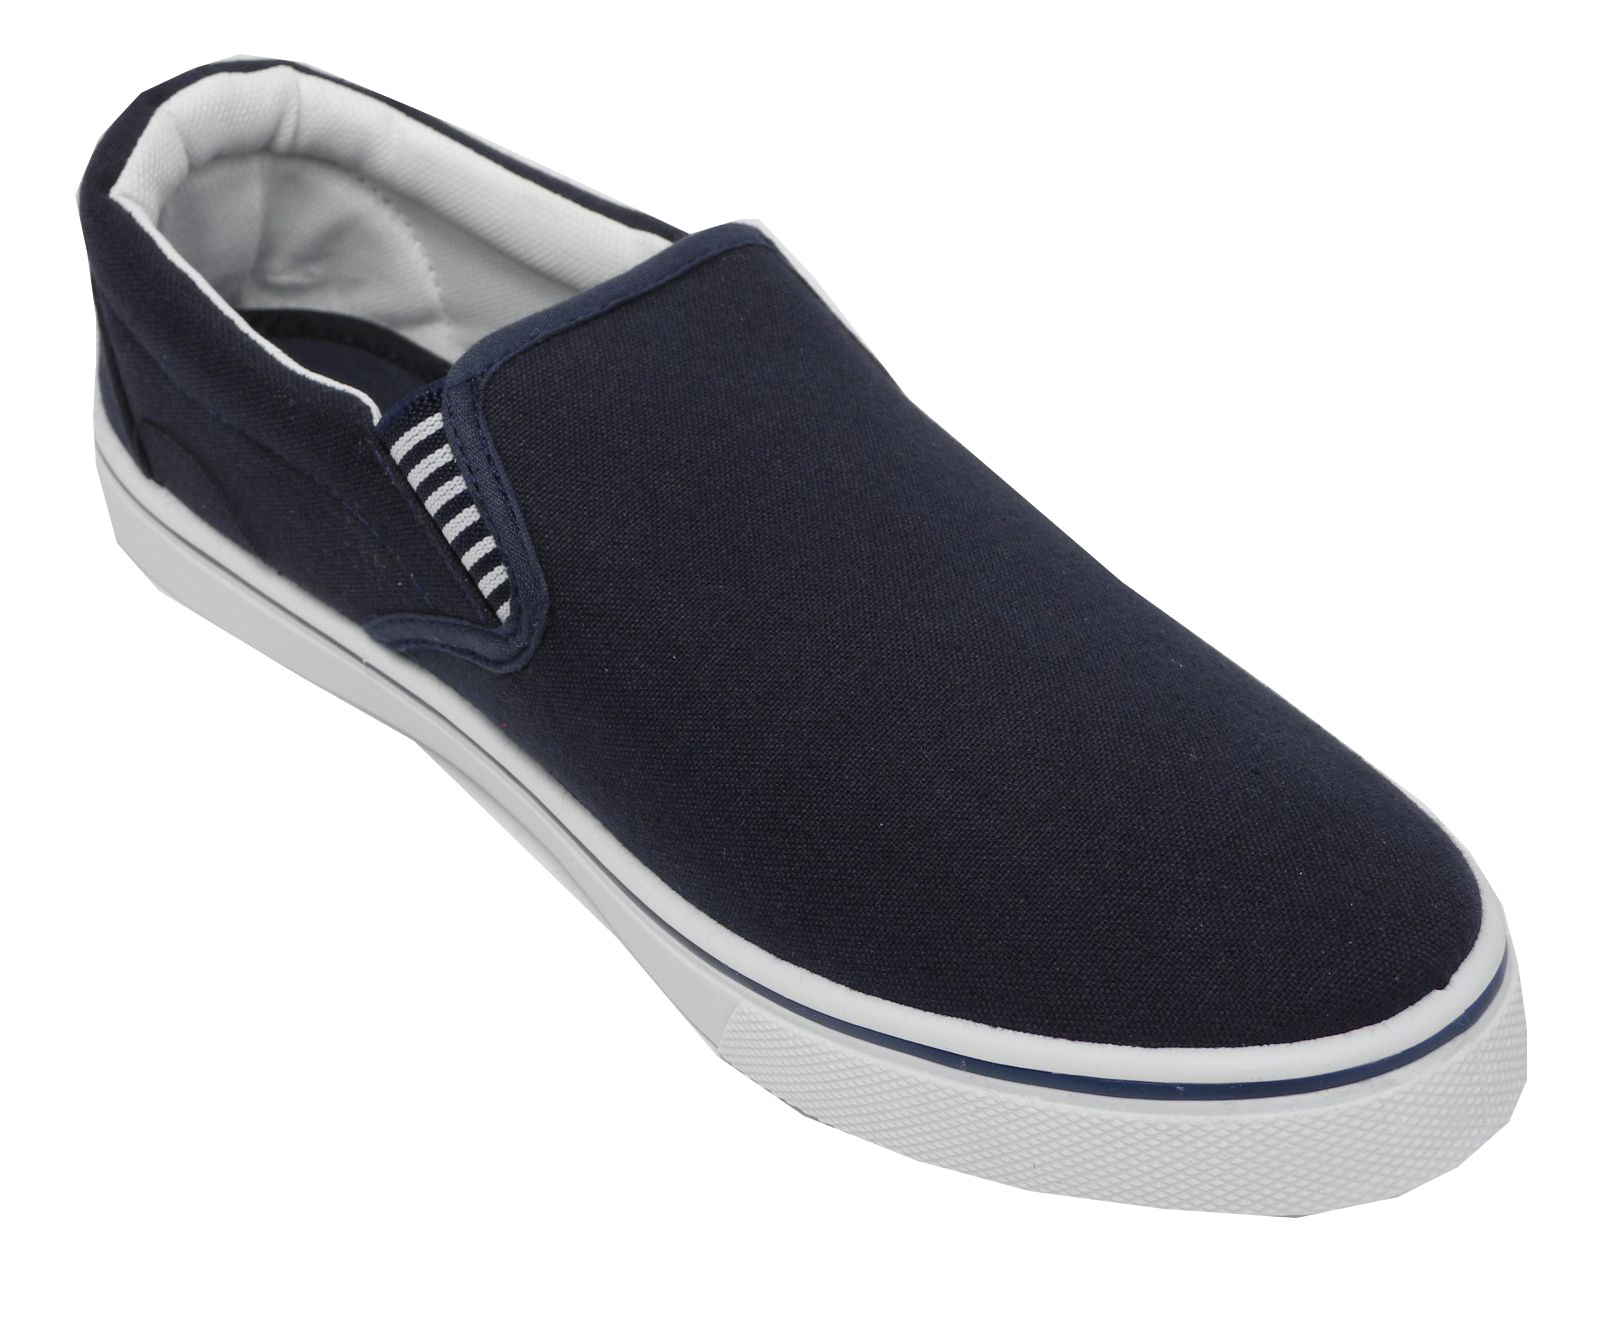 Mens Canvas Deck Shoes